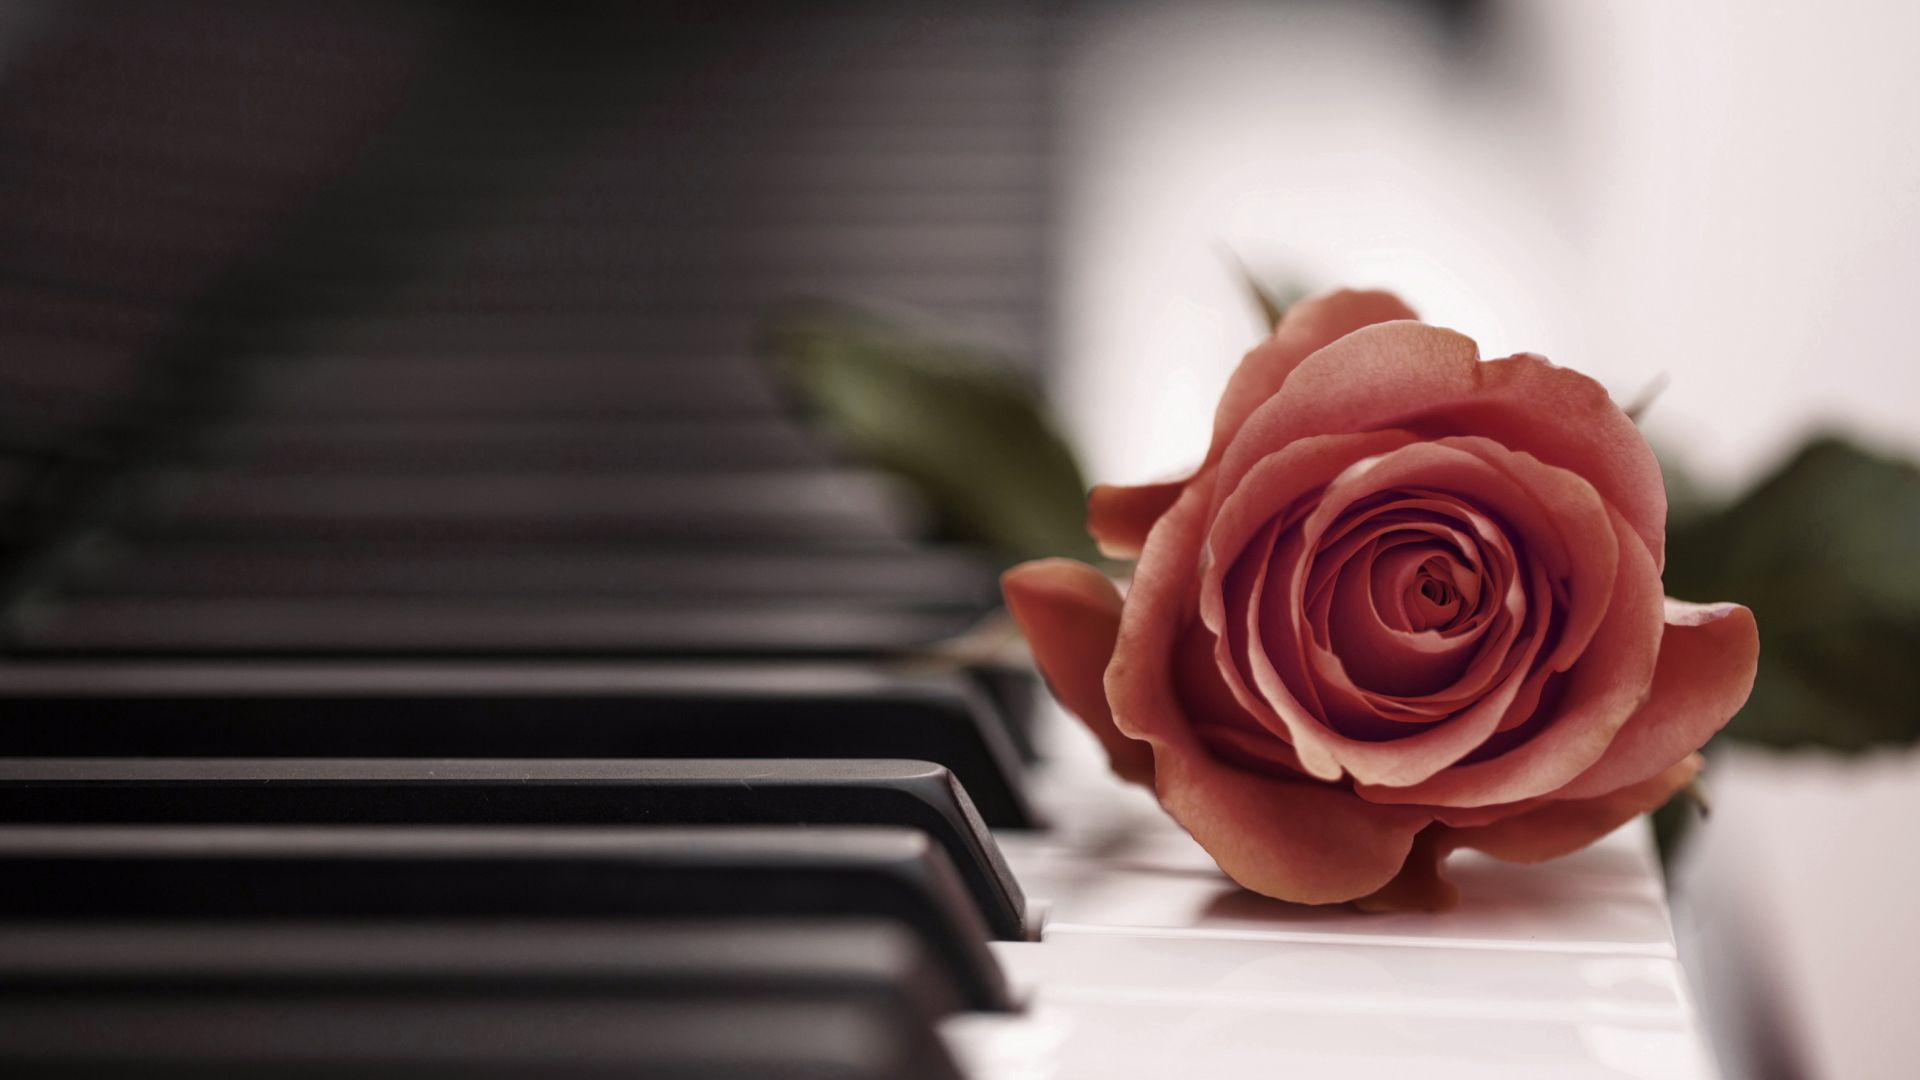 Rose Piano Wallpapers Phone With HD Desktop 1920x1080 Px 50135 KB